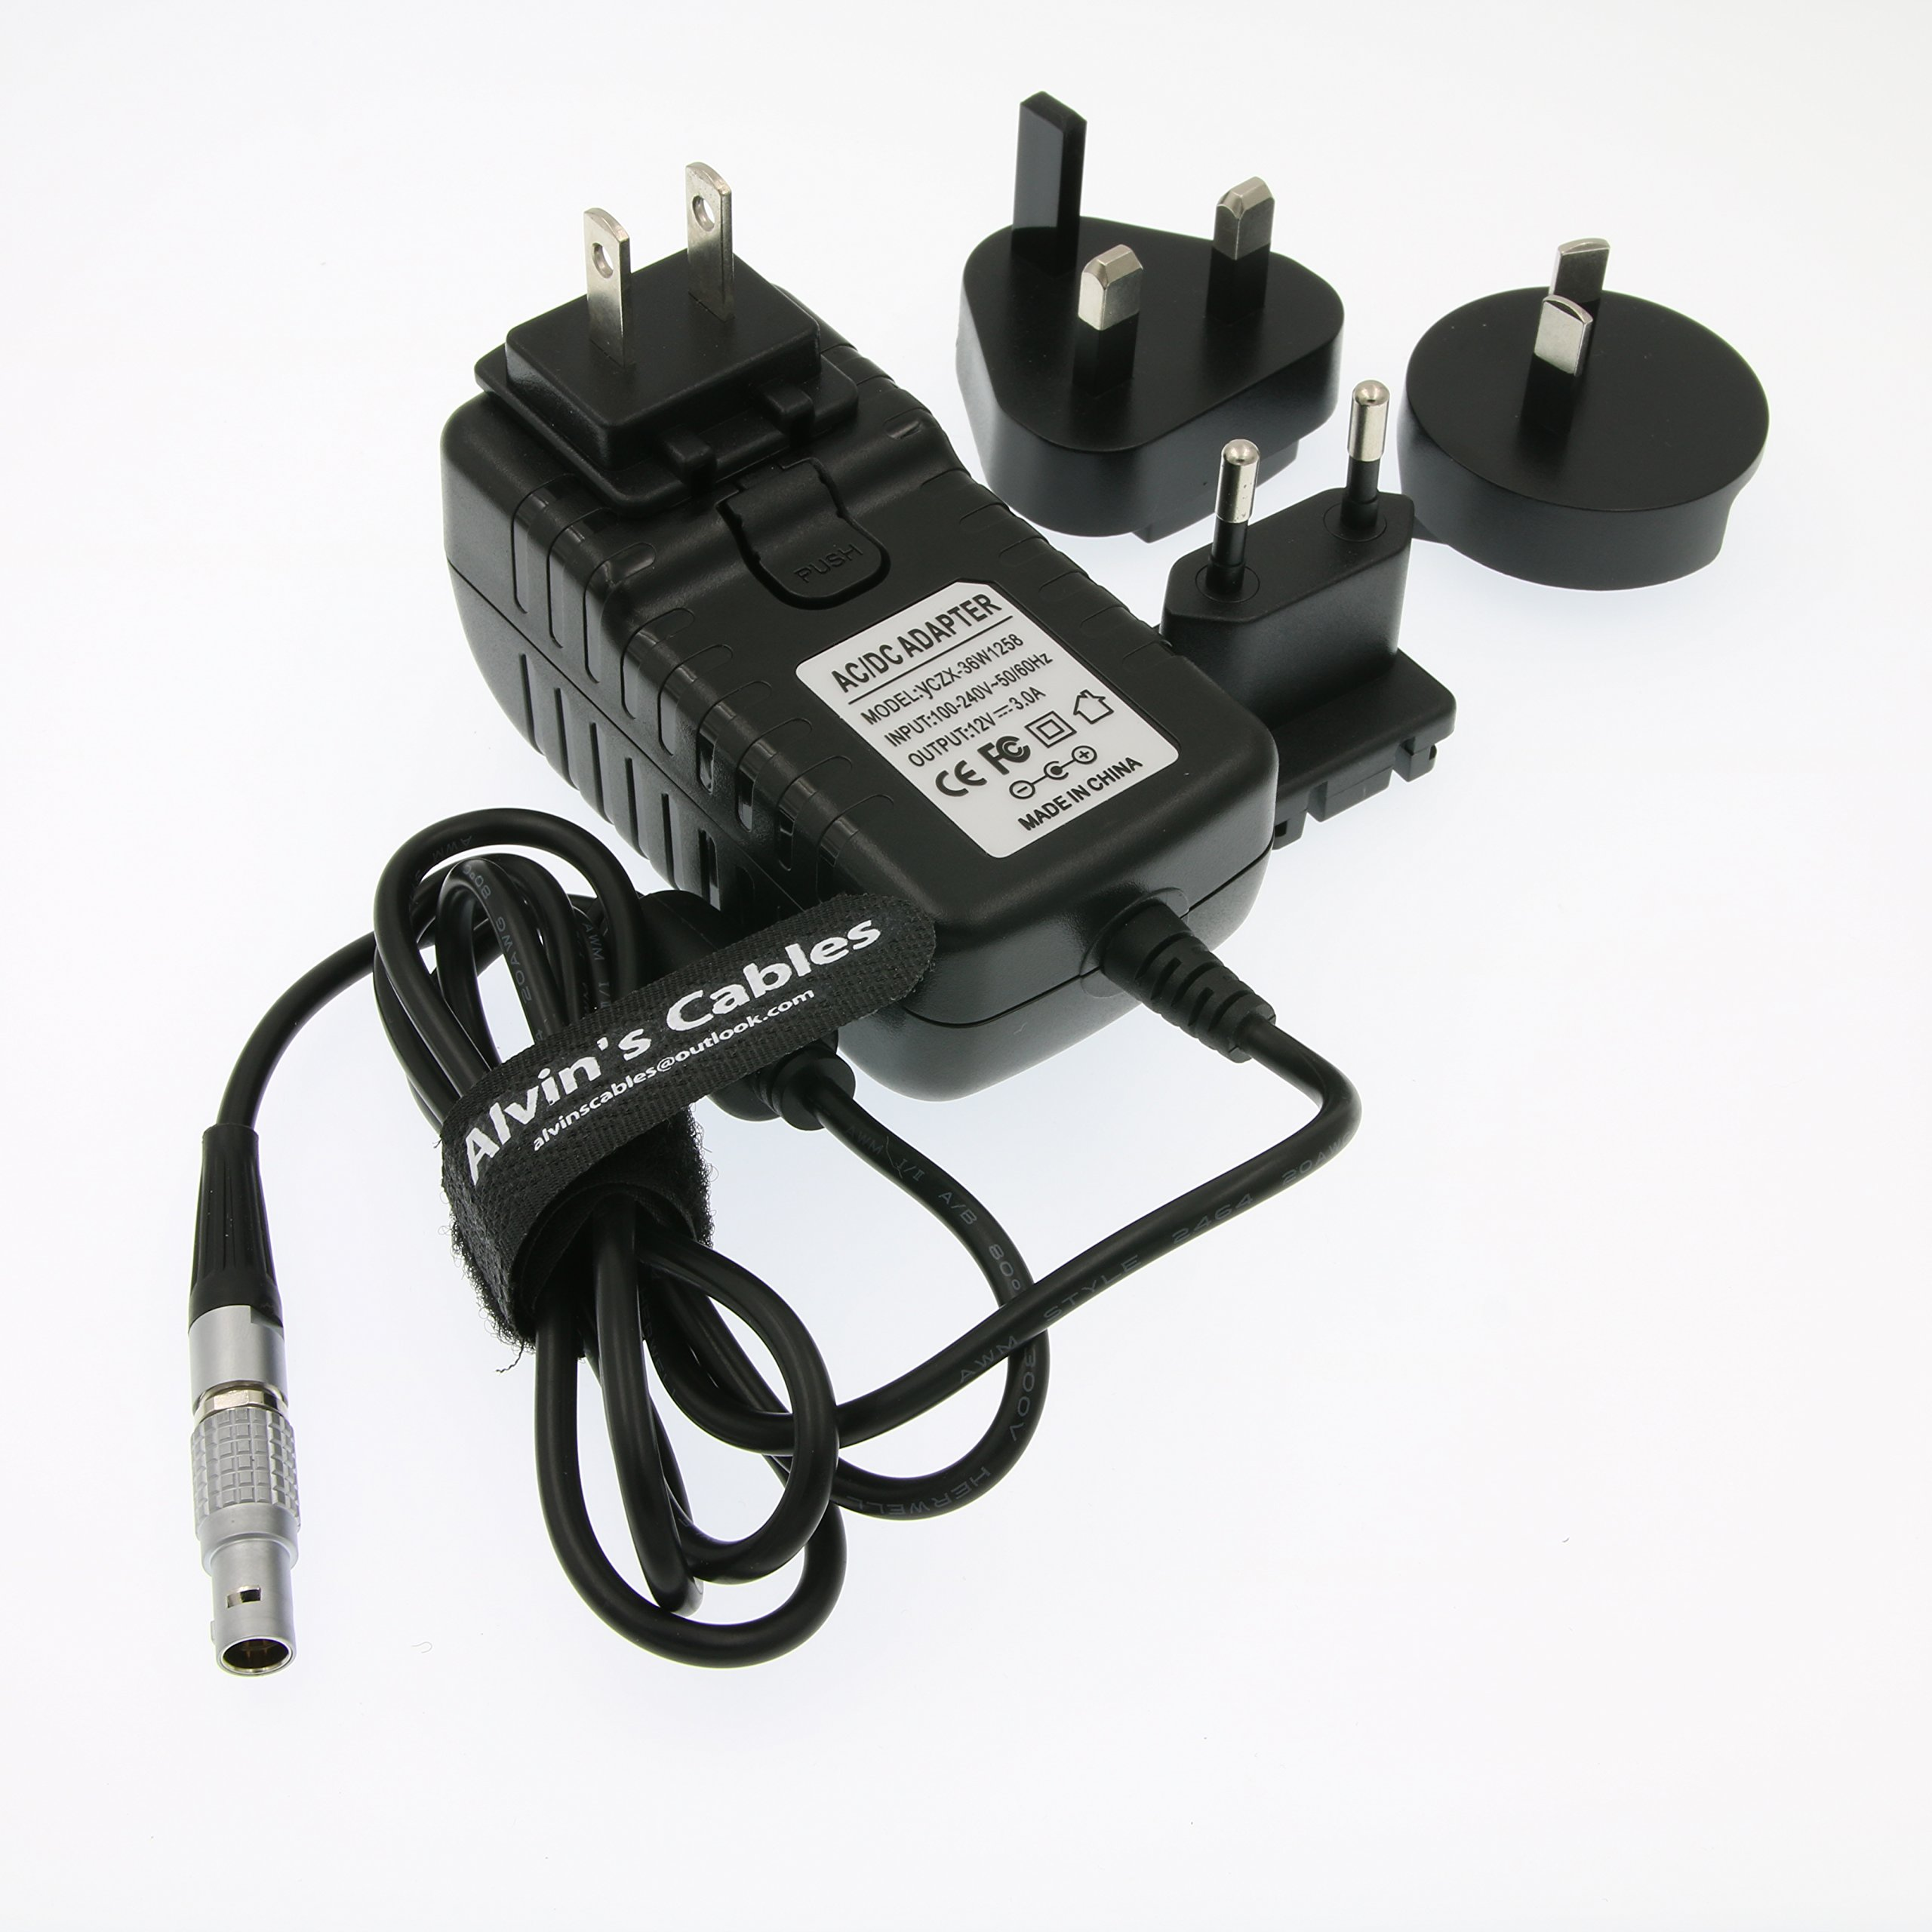 Alvin's Cables Teradek Power Adapter Converter Cable 2 Pin LEMO to Universal AC US UK EU AU Plugs